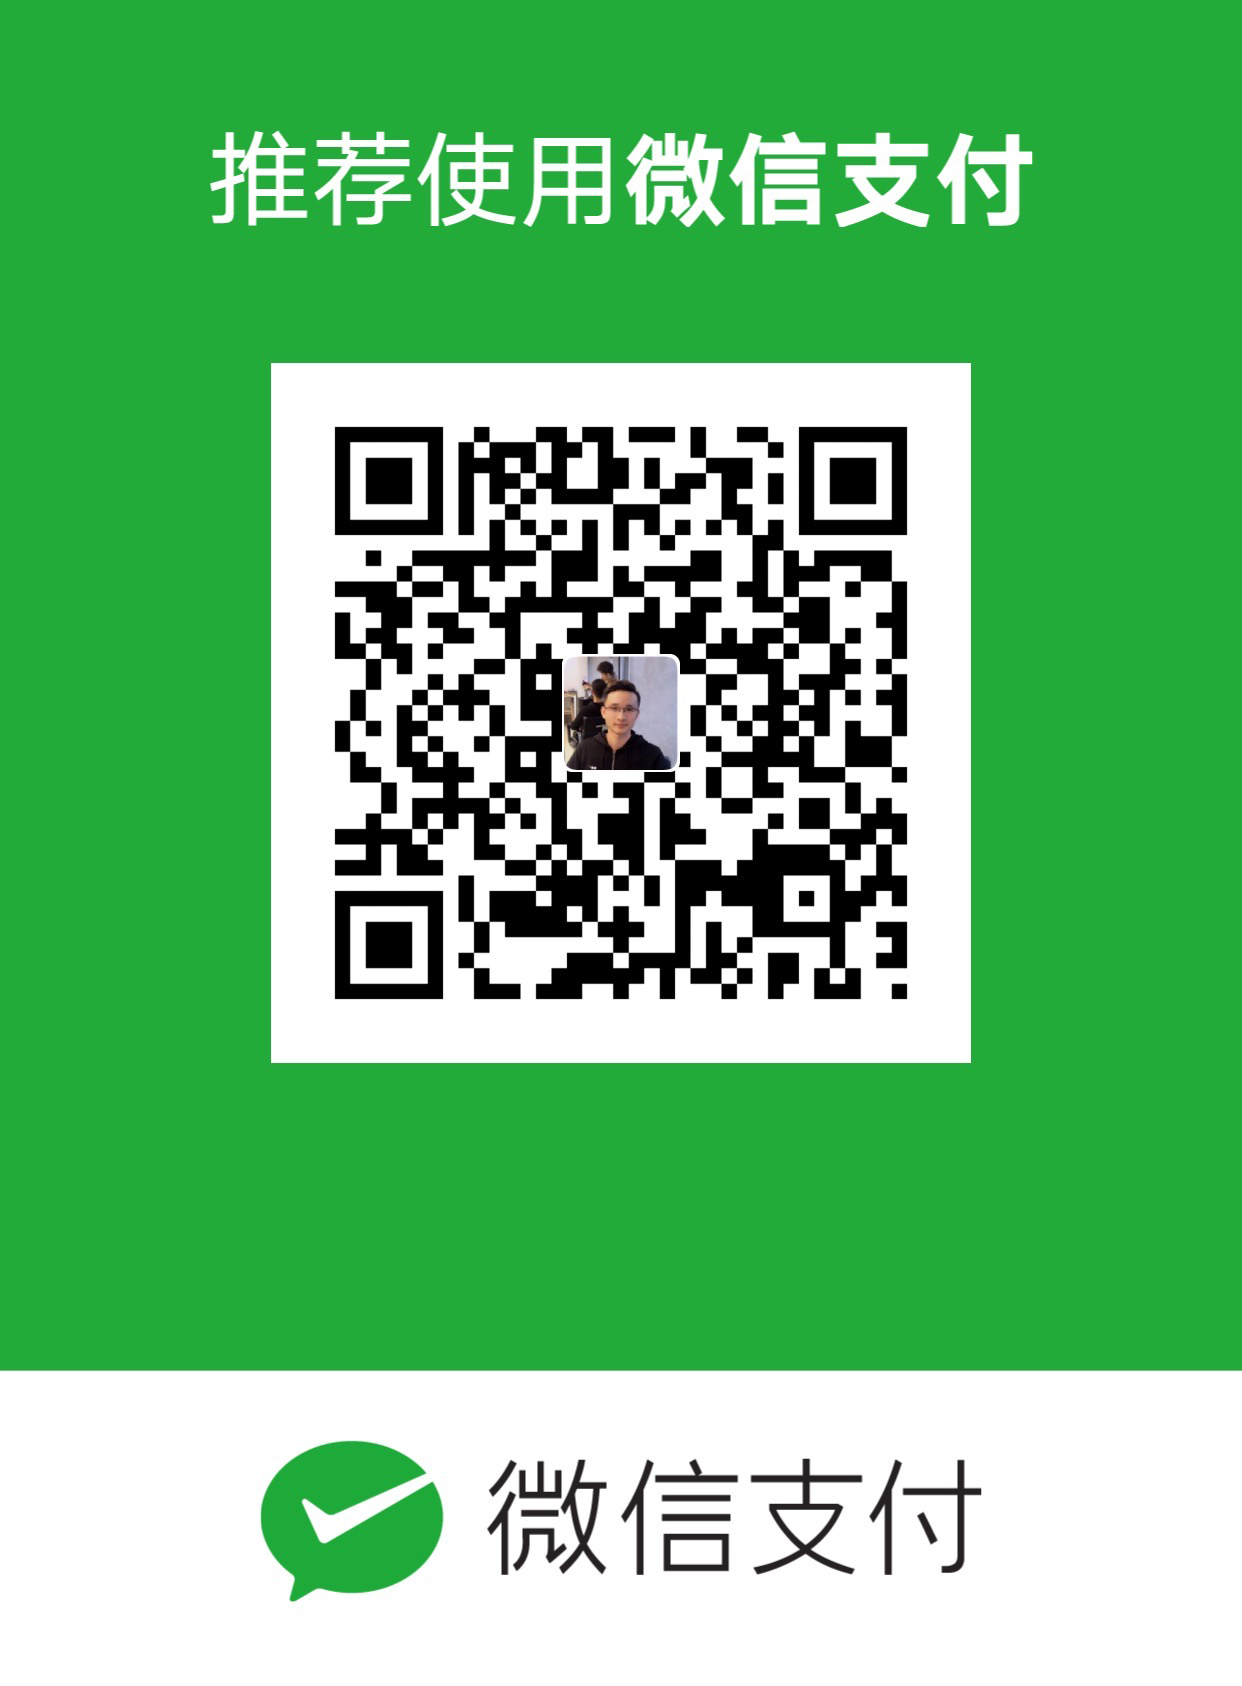 TKVERN WeChat Pay